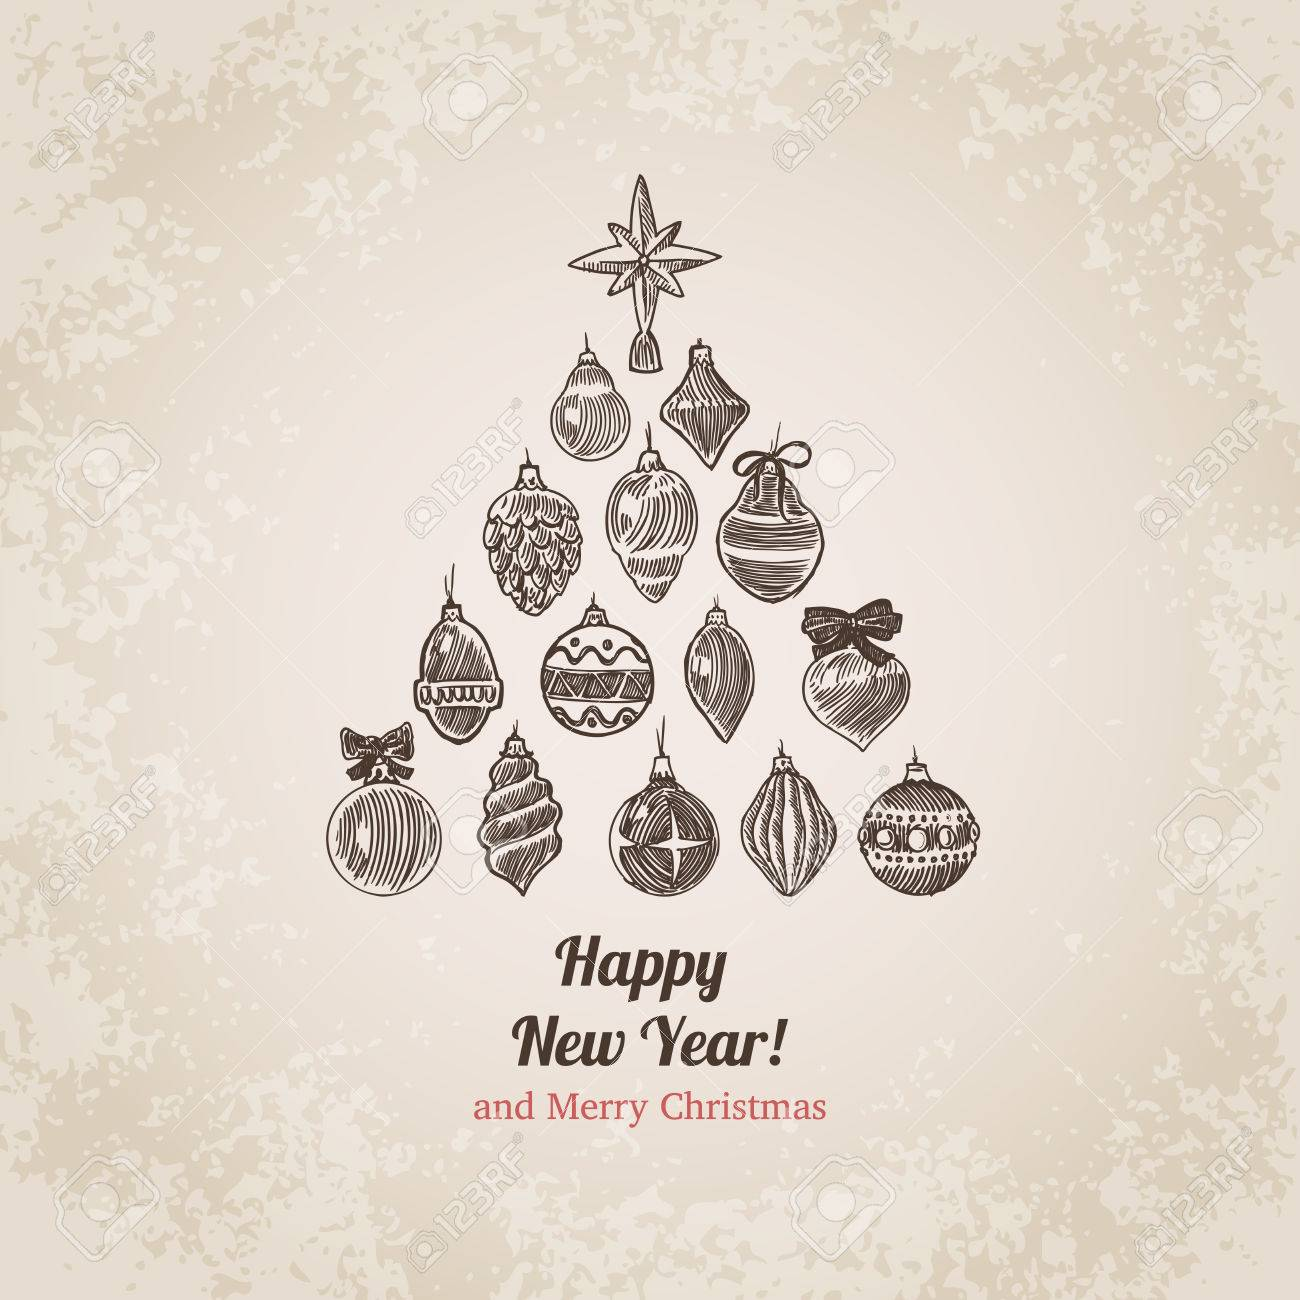 Christmas Tree Decorations Set New Year Handdrawn Engraving Style